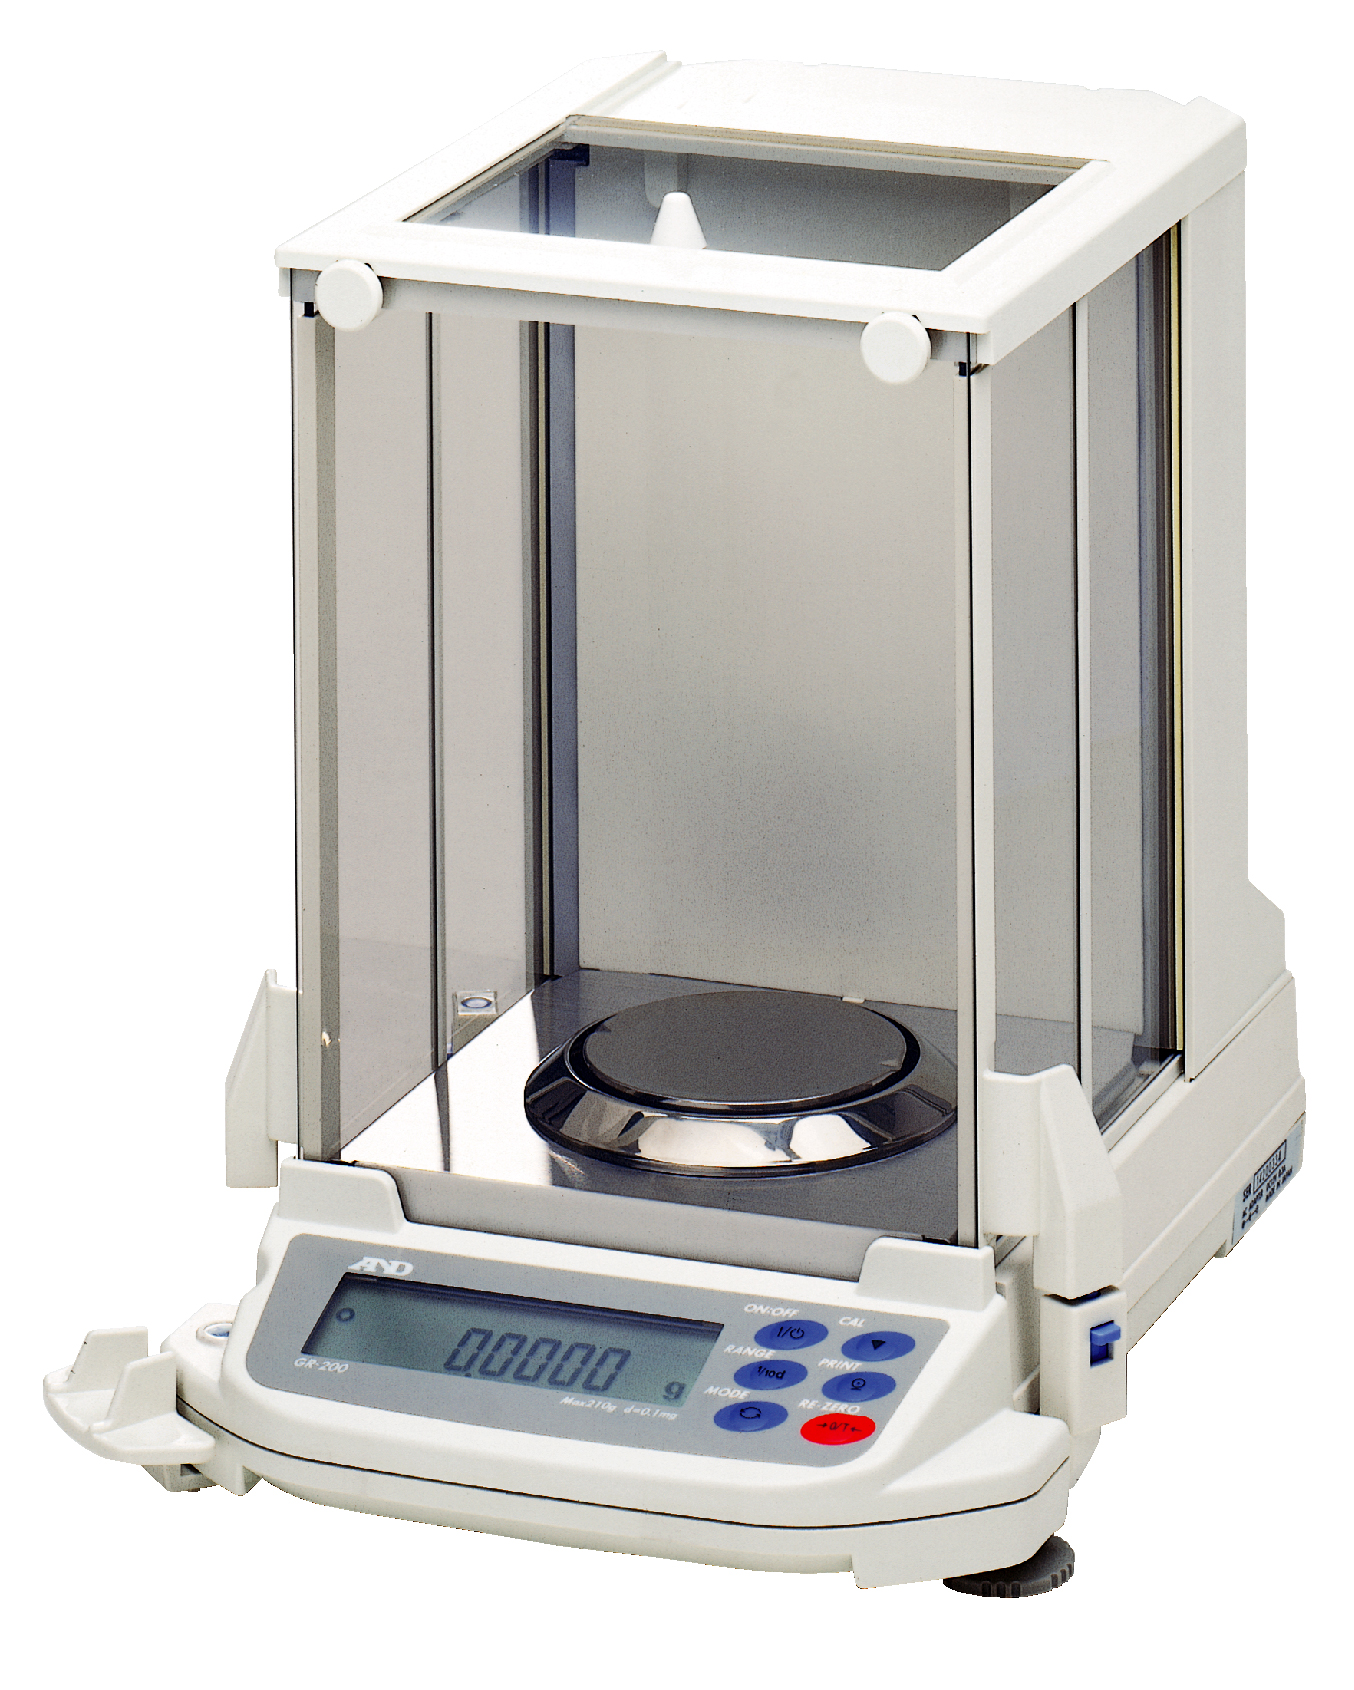 A&D GR SERIES SEMI-MICRO ANALYTICAL BALANCE | weighingscales.com